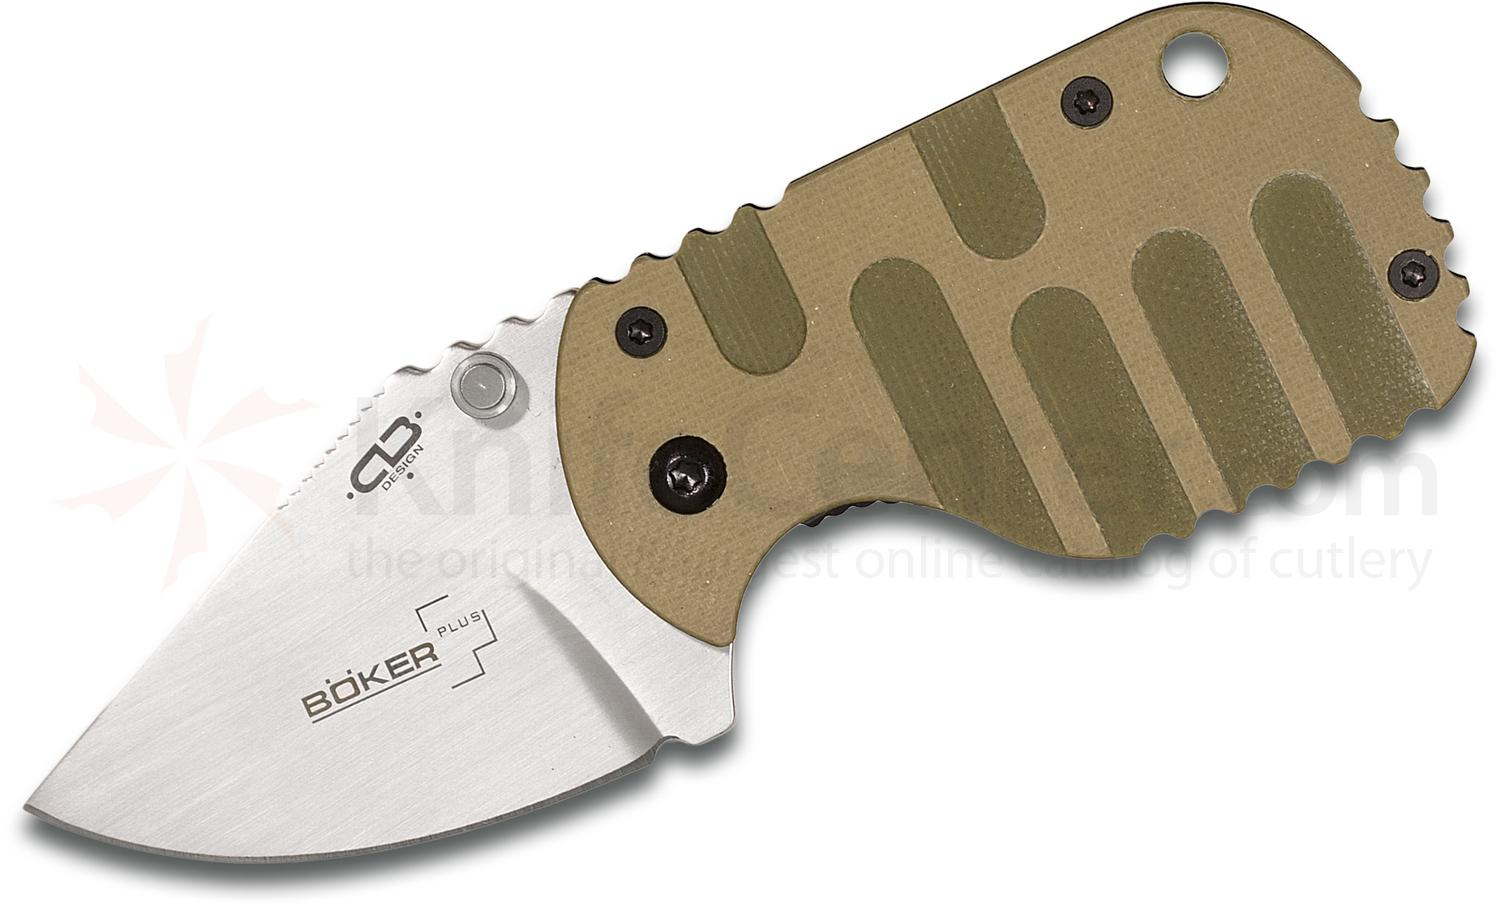 Boker Plus Subcom Folding Knife 1.875 inch Satin Plain Blade, Desert and Green G10 Handle, KnifeCenter Exclusive